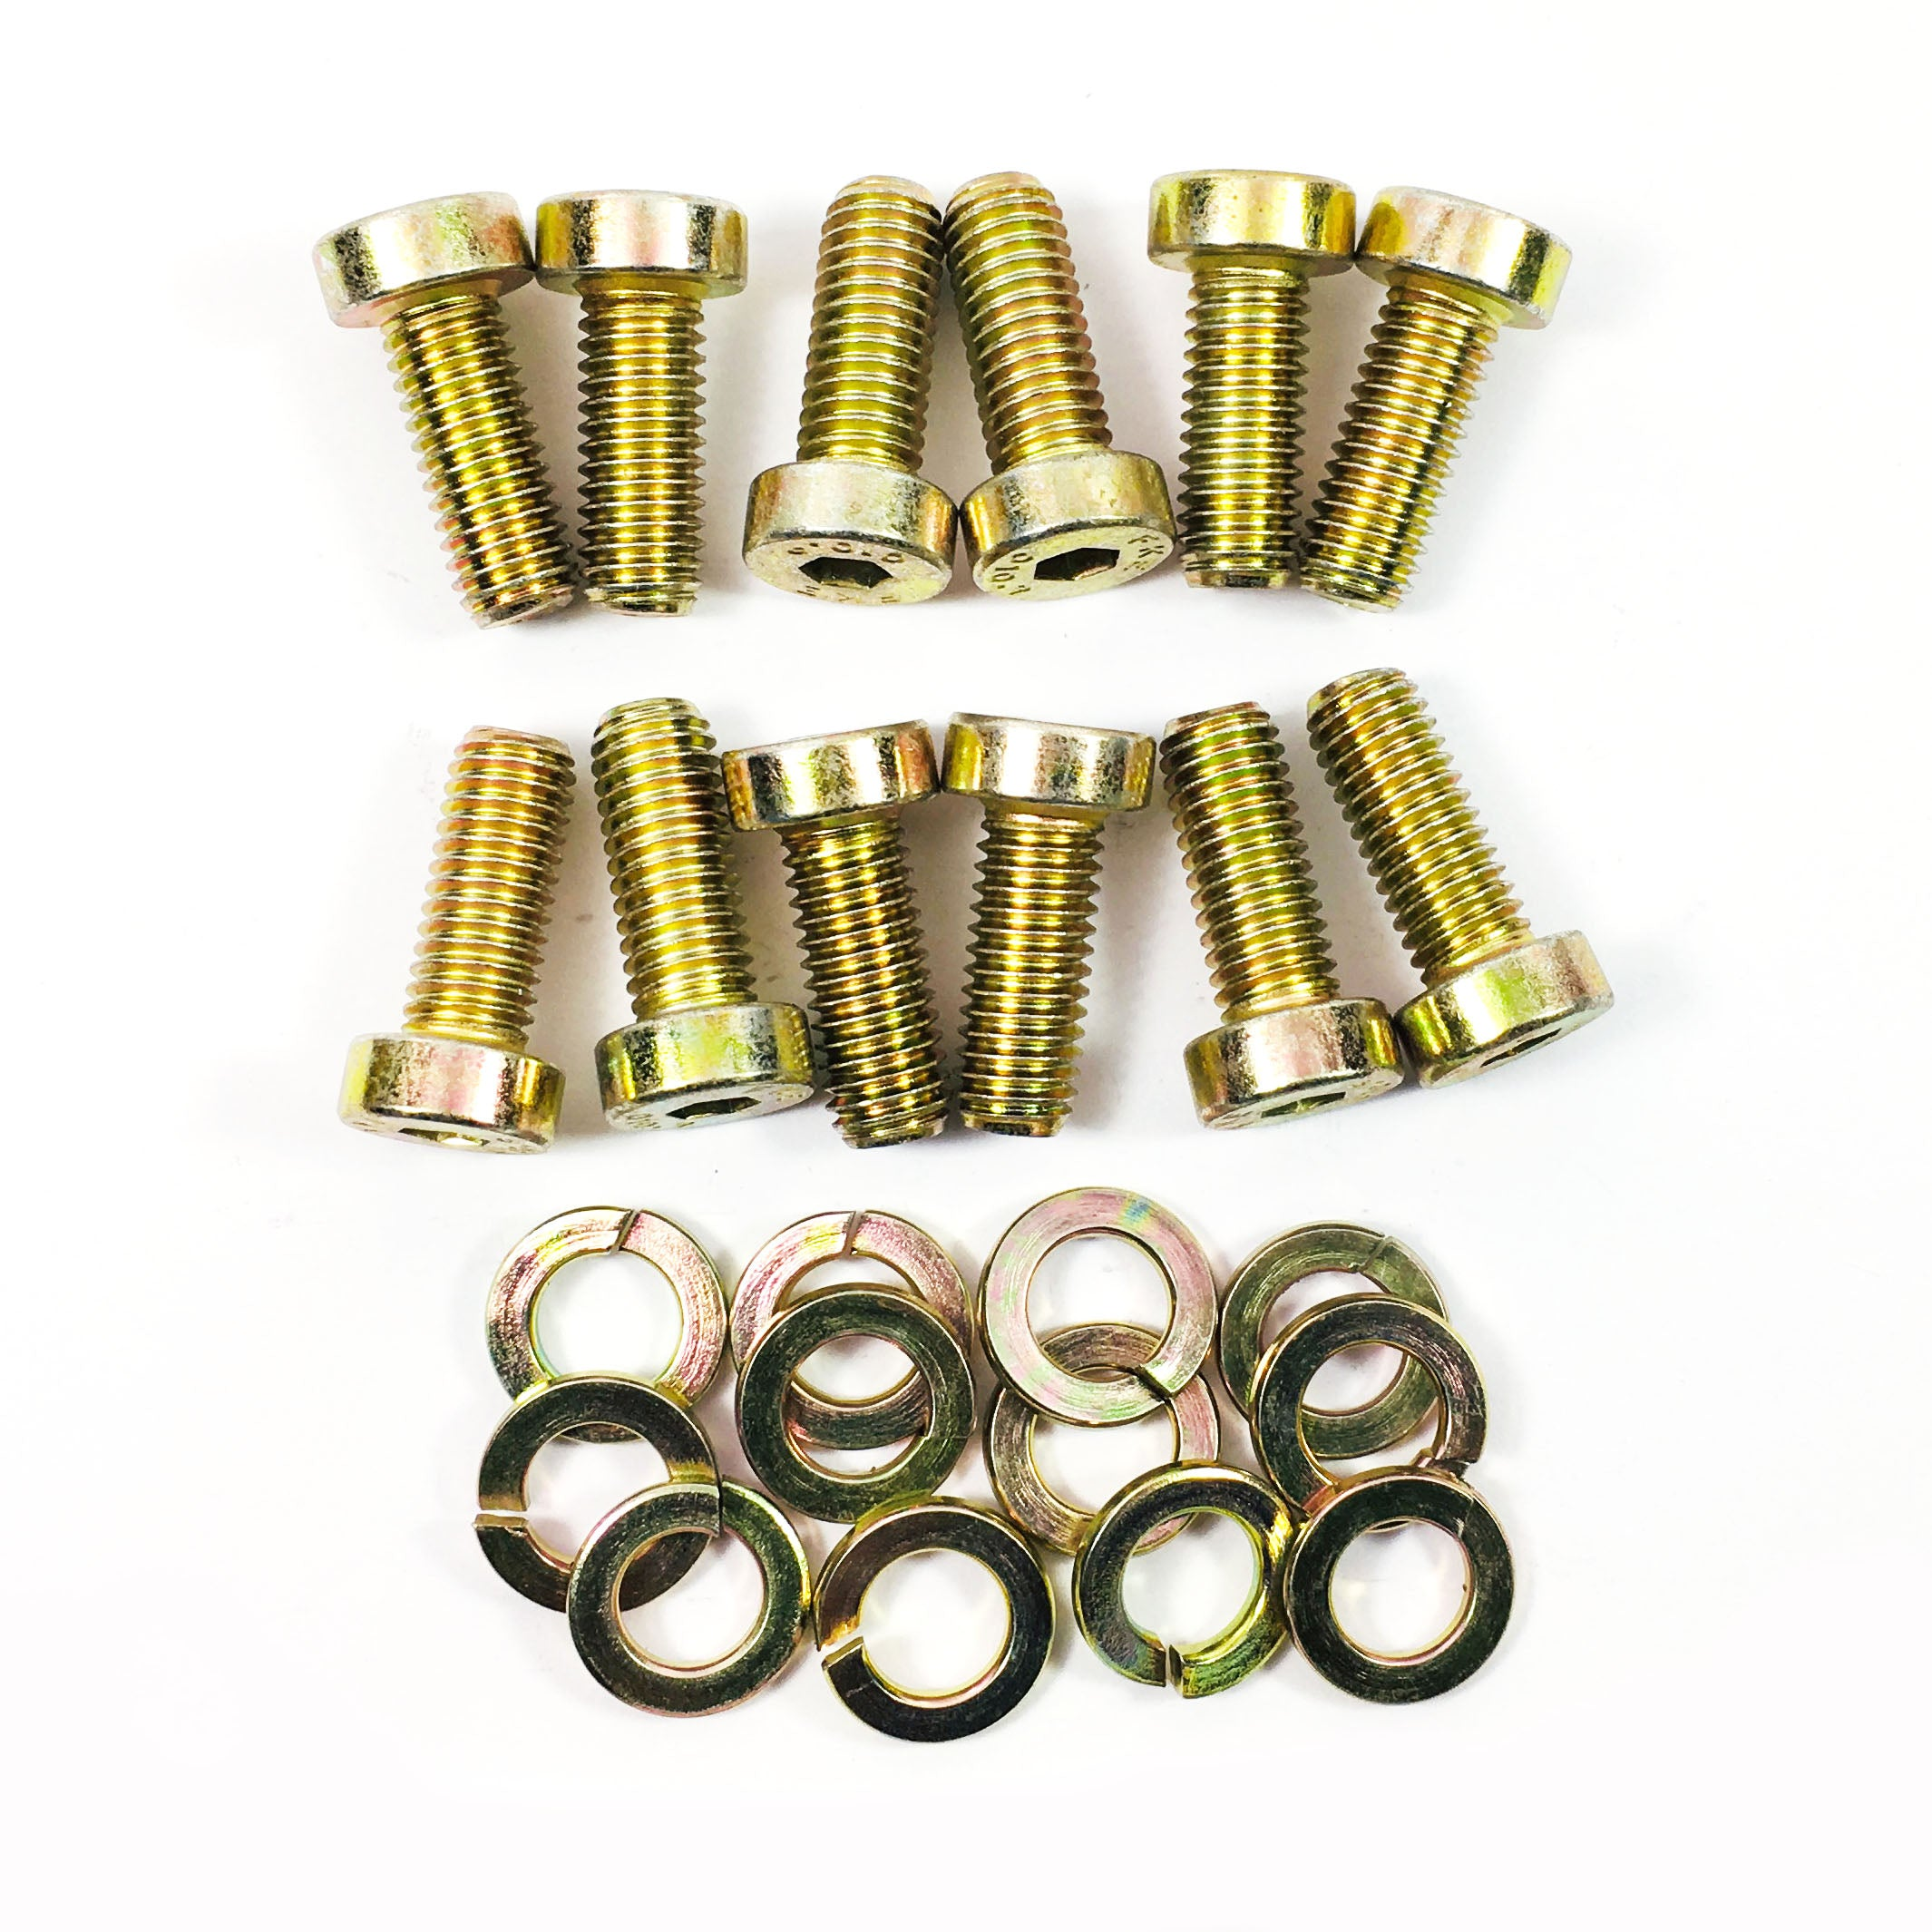 Seat Mounting Bolt Kit (85-95) - Steel/Yellow Zinc Plated